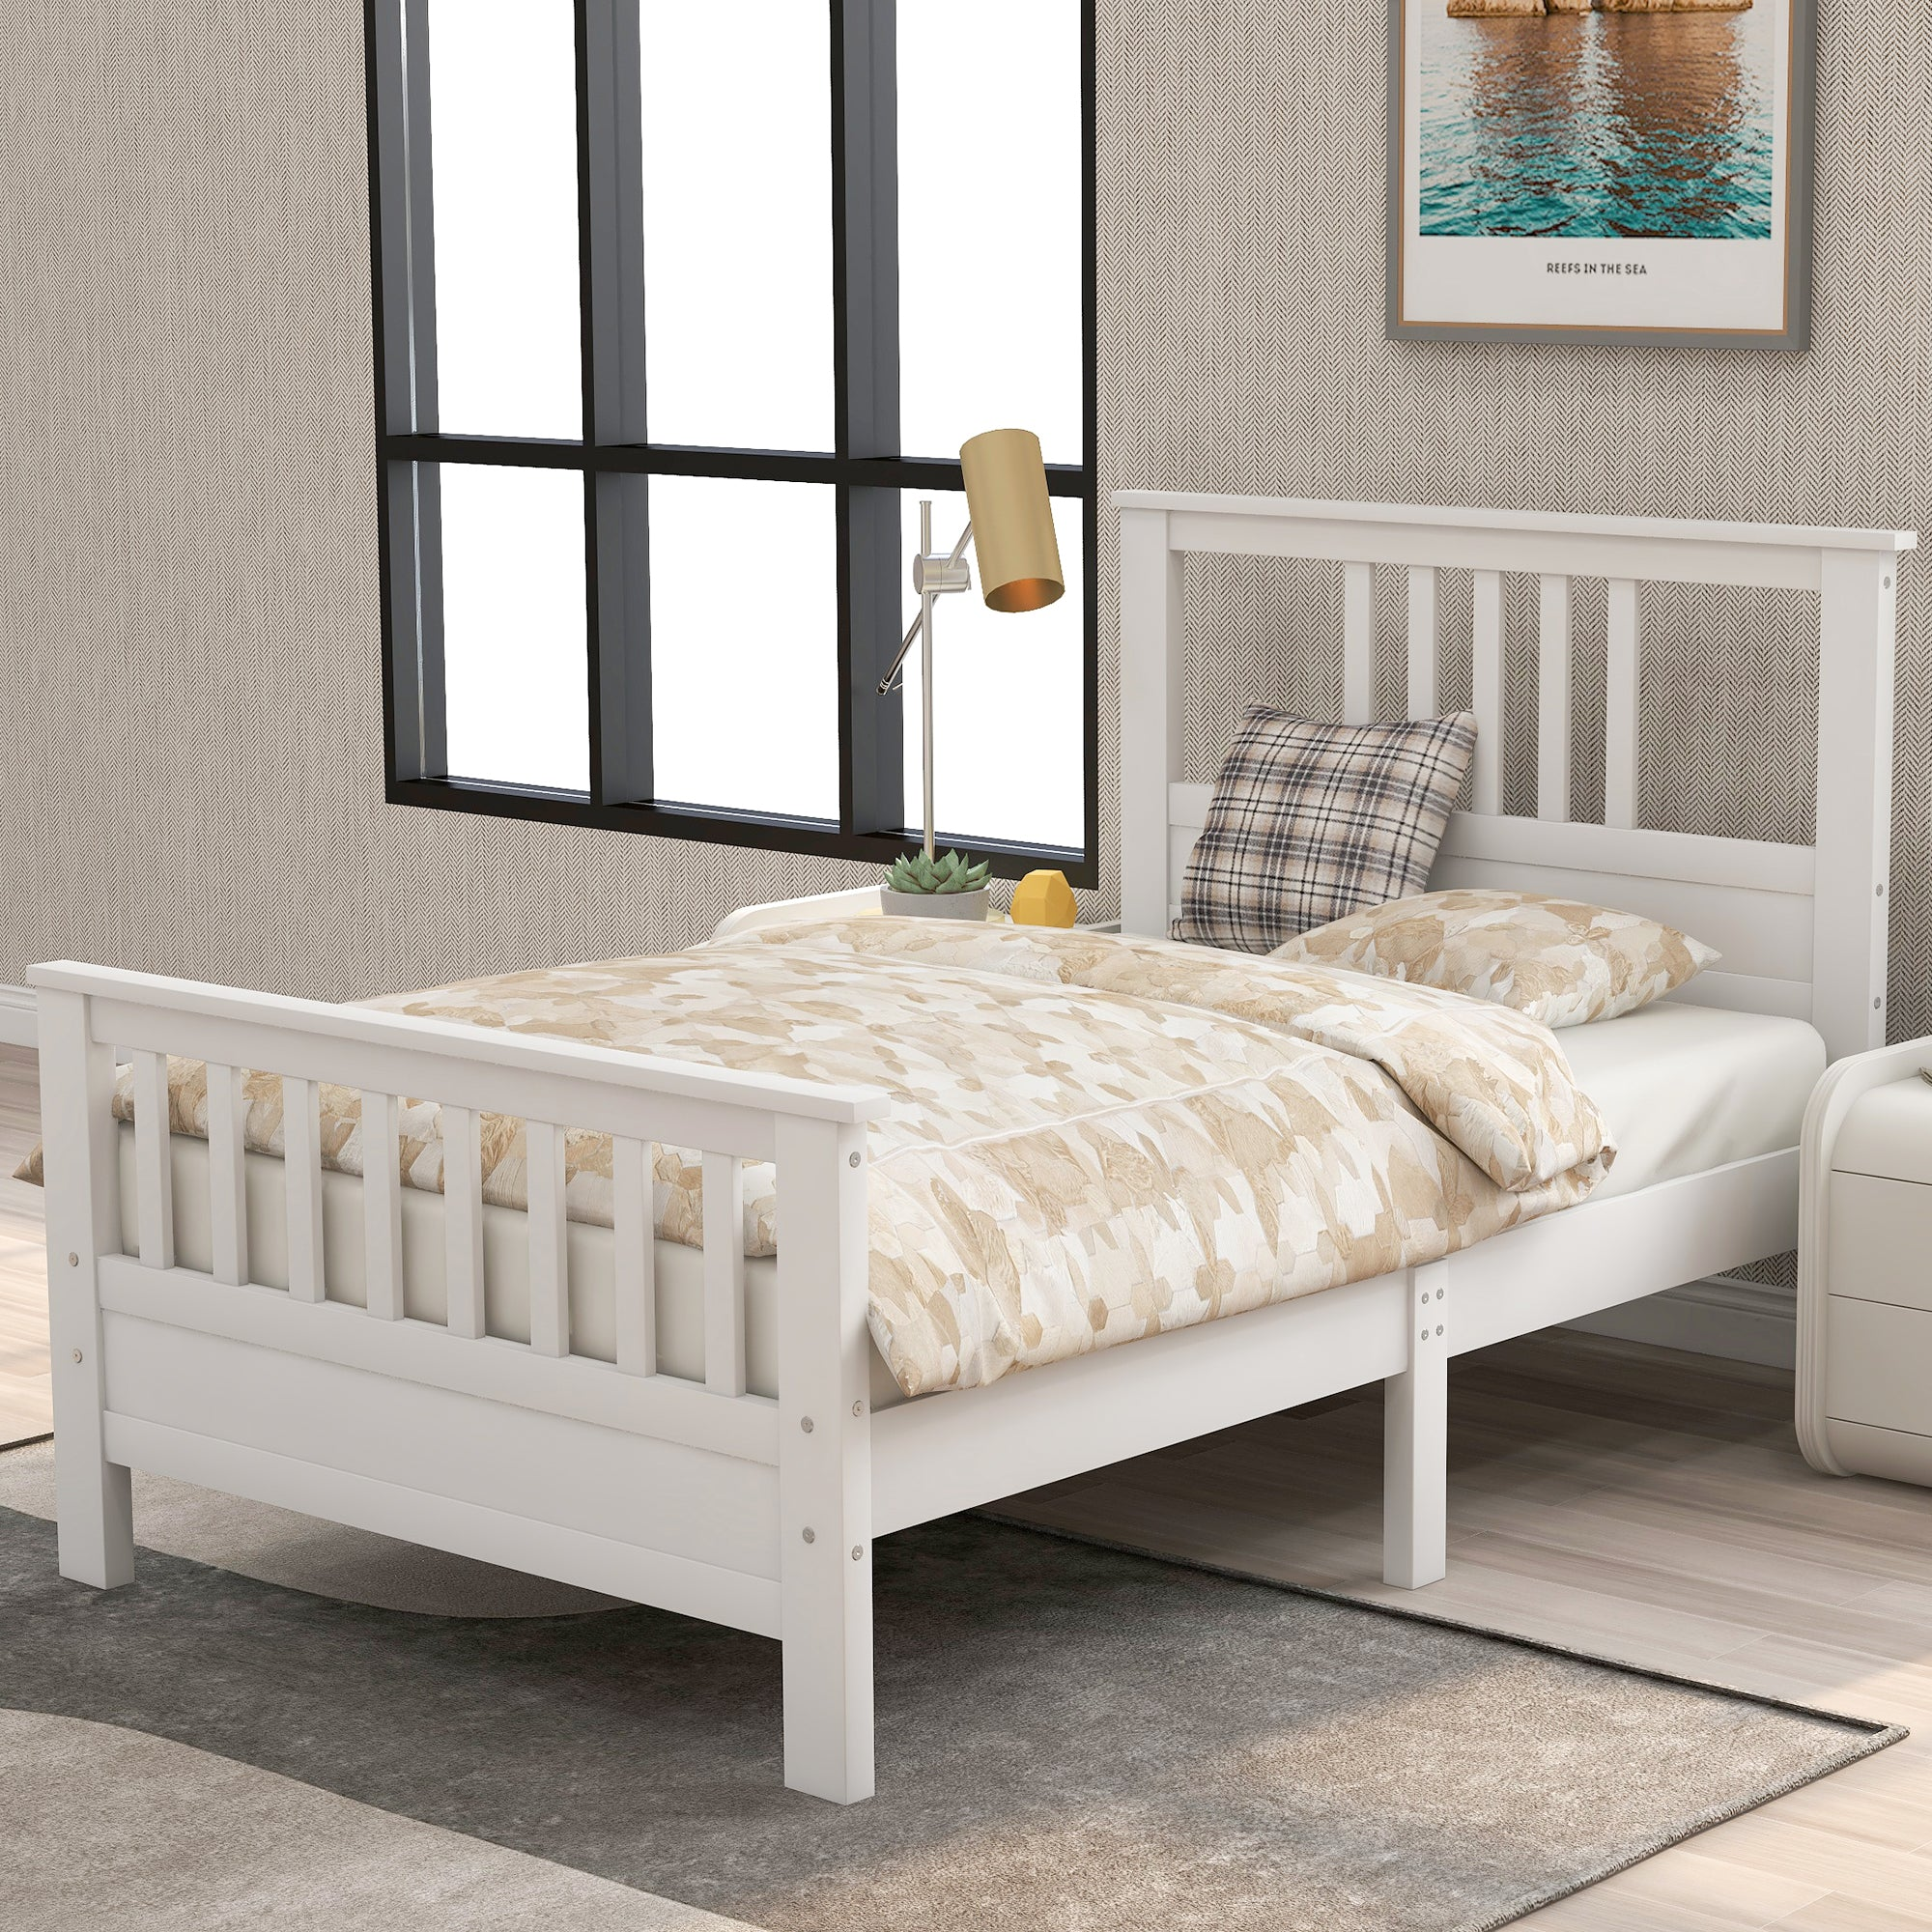 Wood Platform Bed With Headboard And Footboard